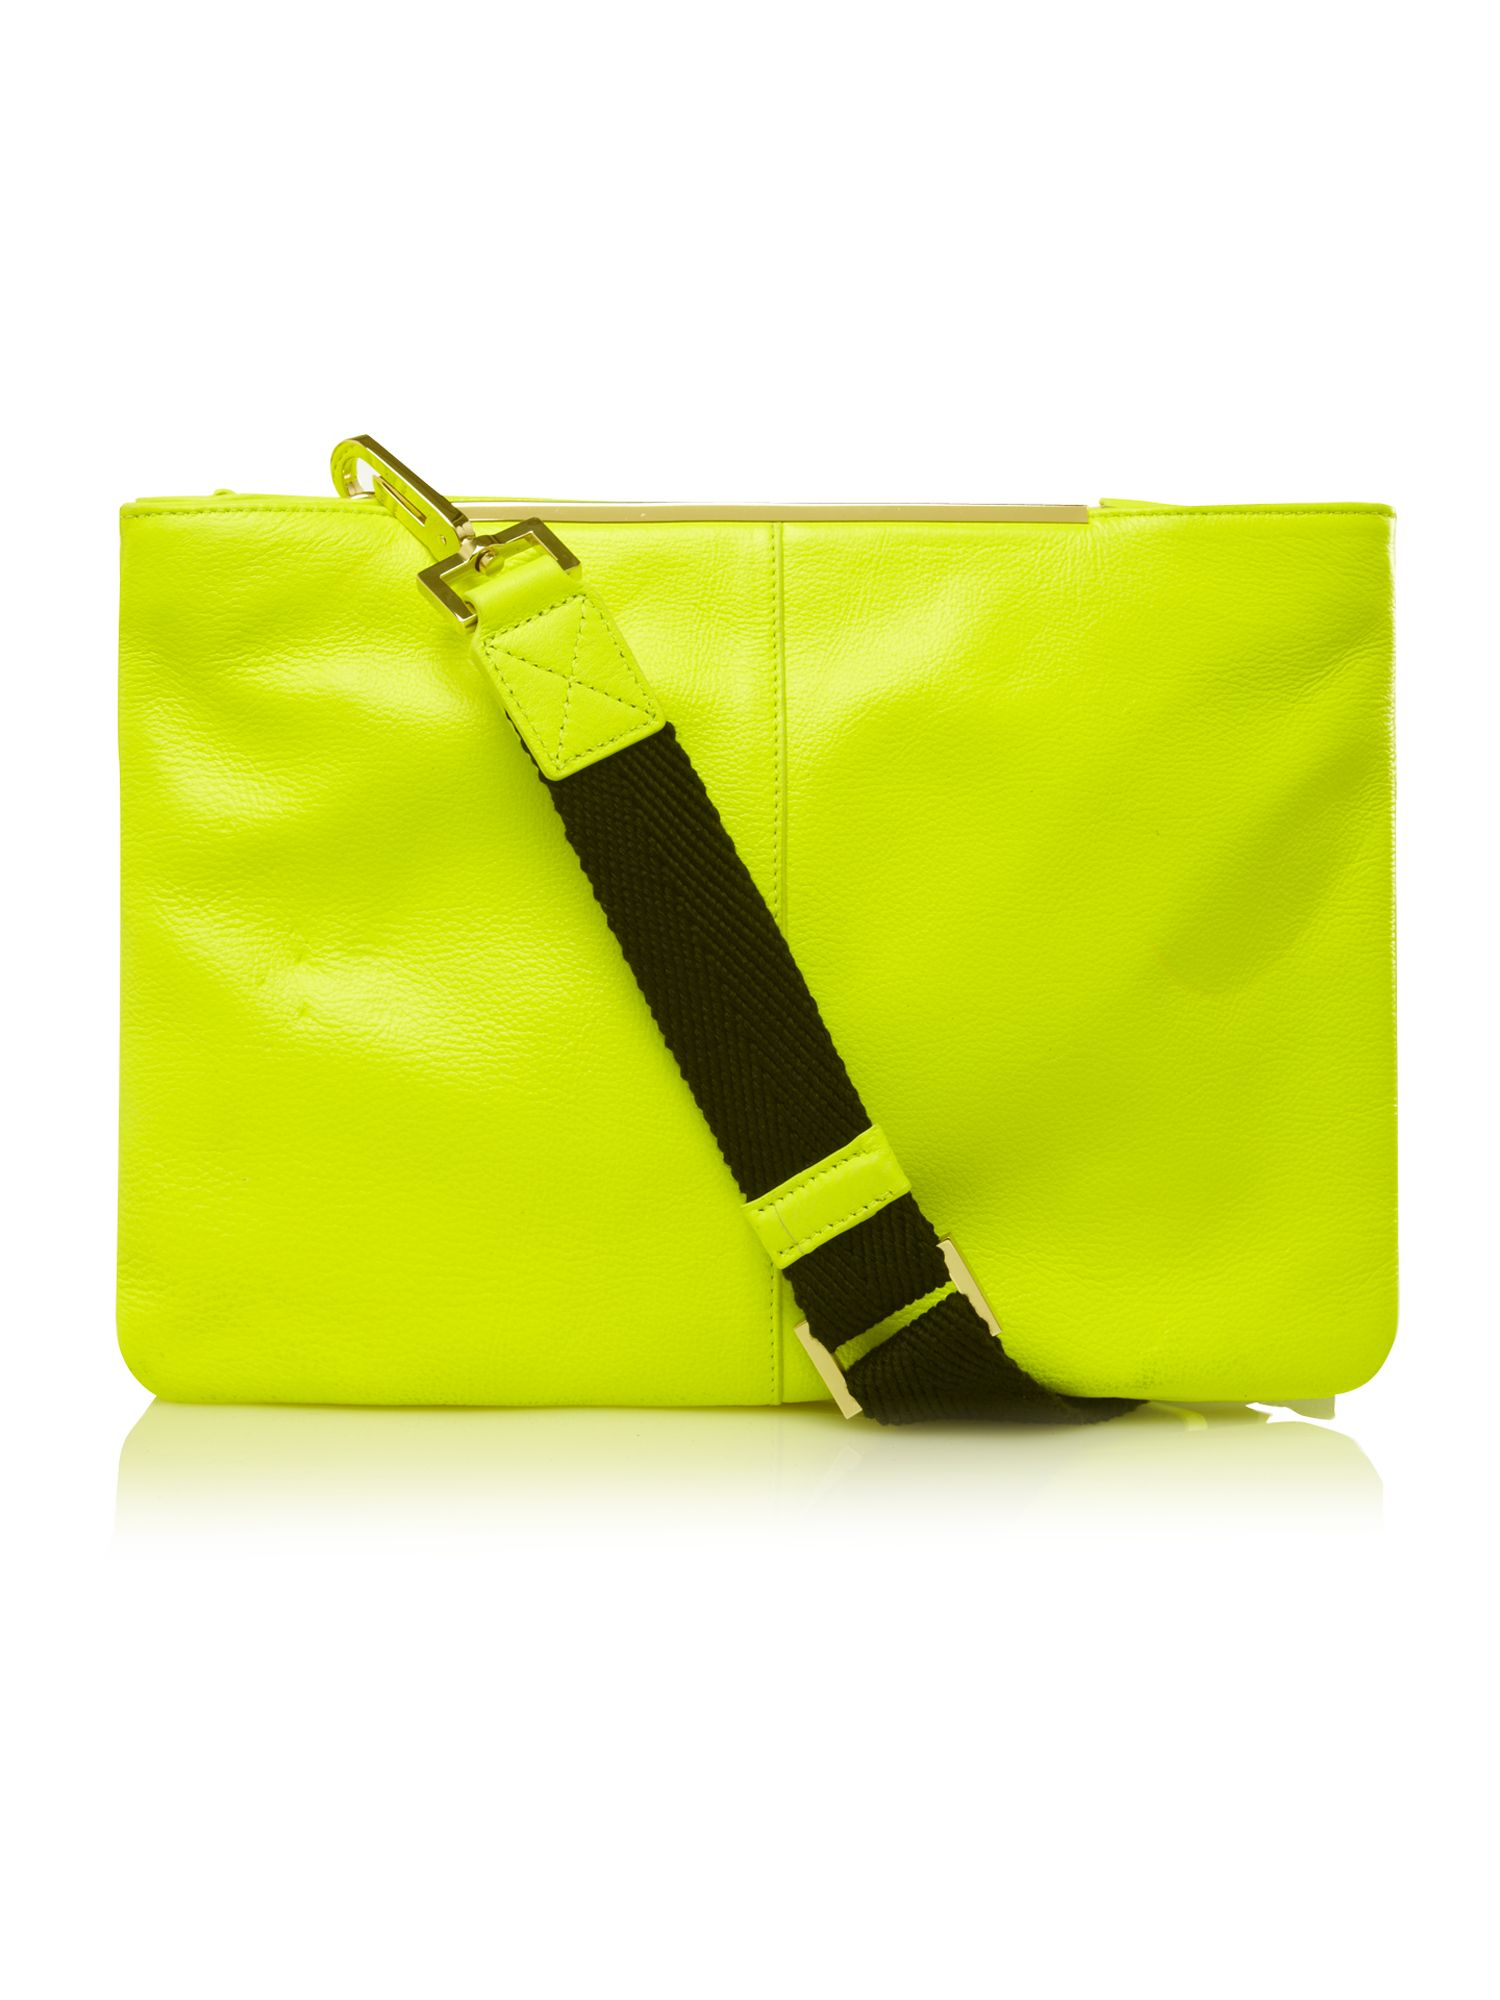 The beat double zip feature cross body bag